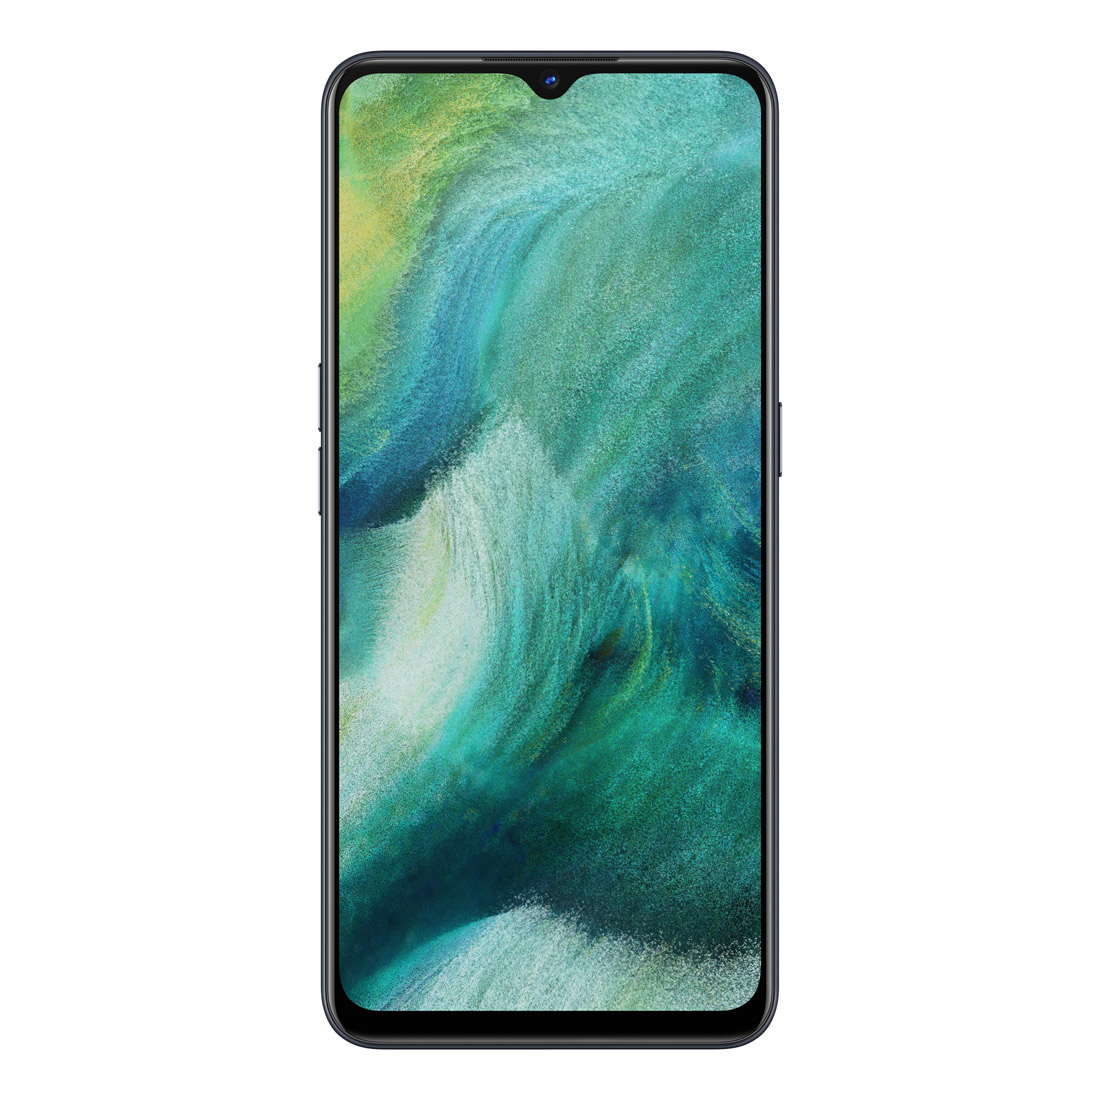 "Oppo Find X2 Lite 5G (6.4"", 48MP Quad Camera, 128GB/8GB) - Obsidian Black"